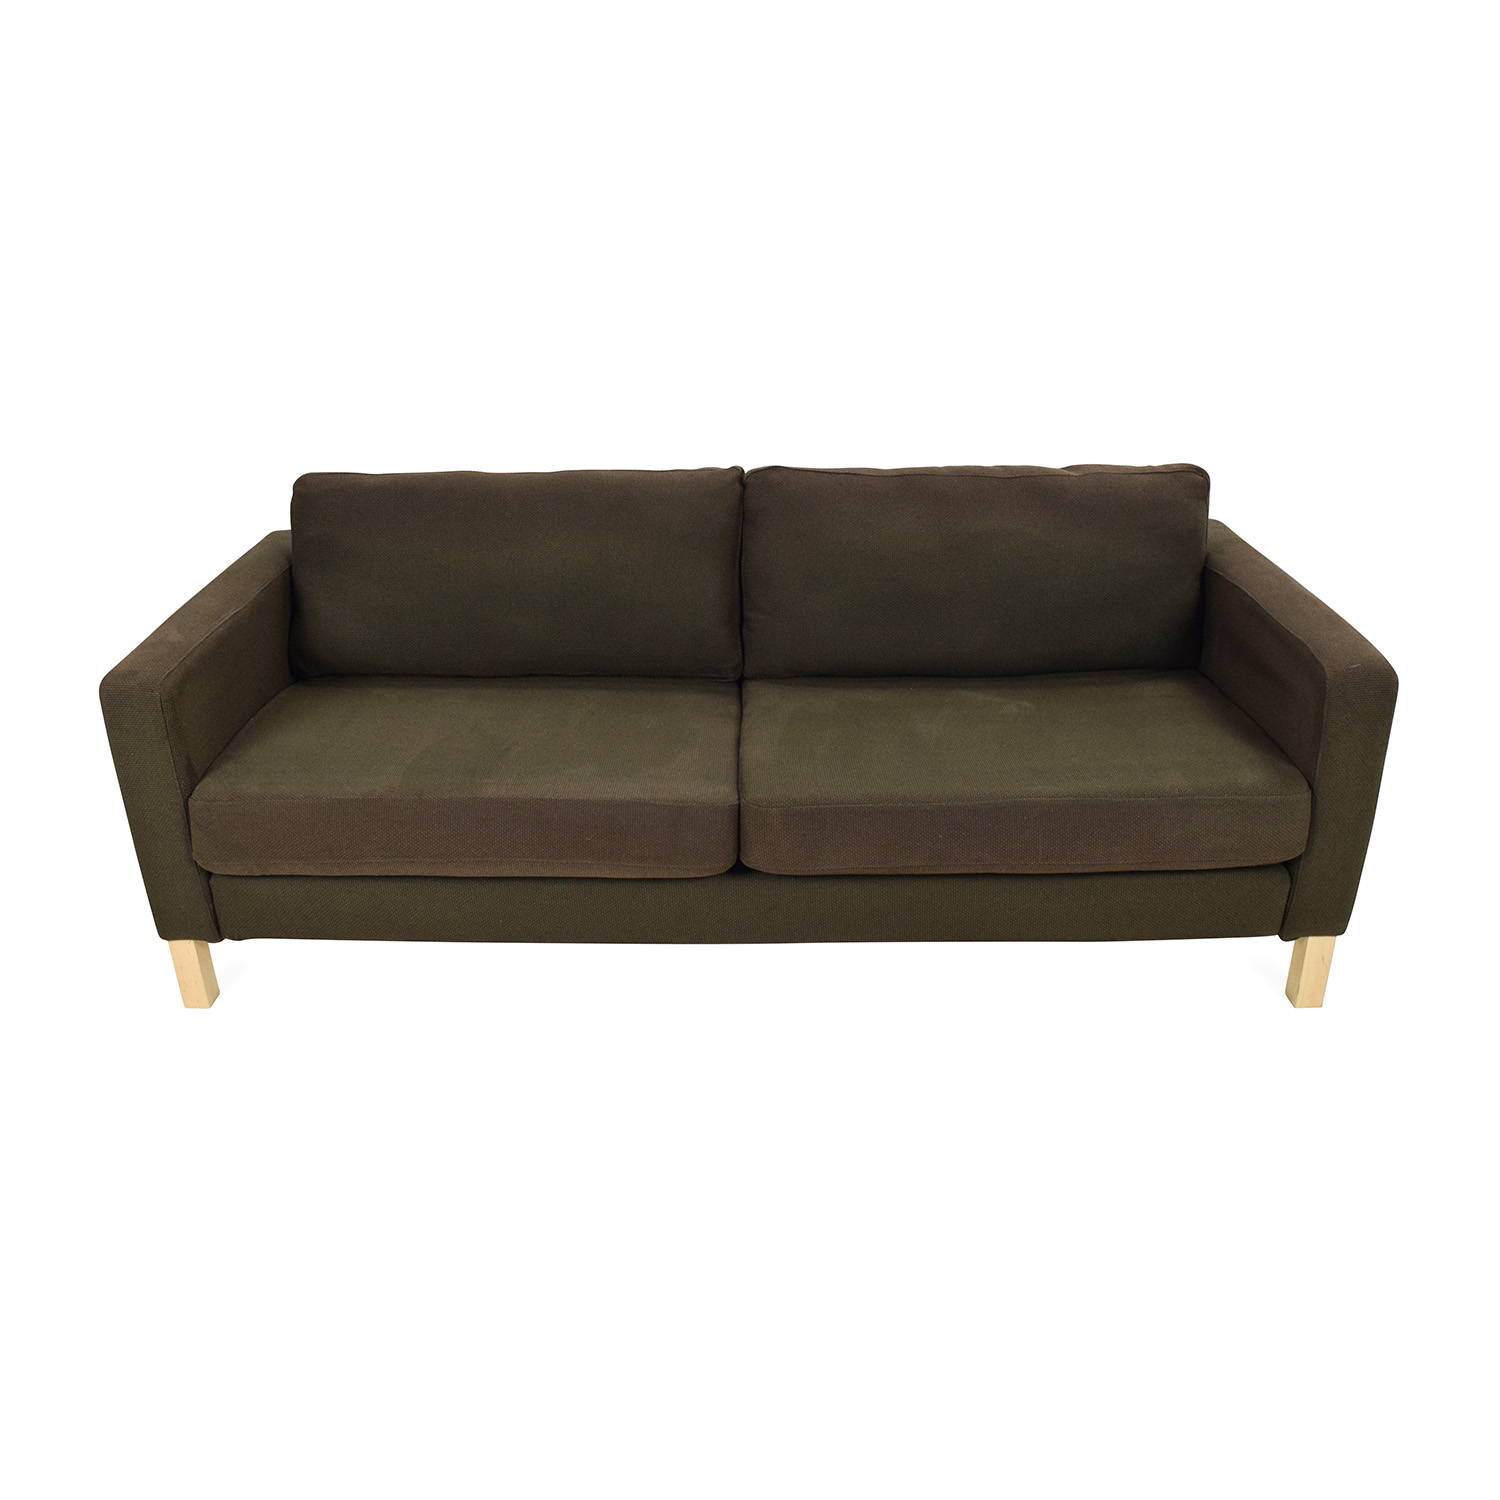 IKEA Brown Sofa / Sofas